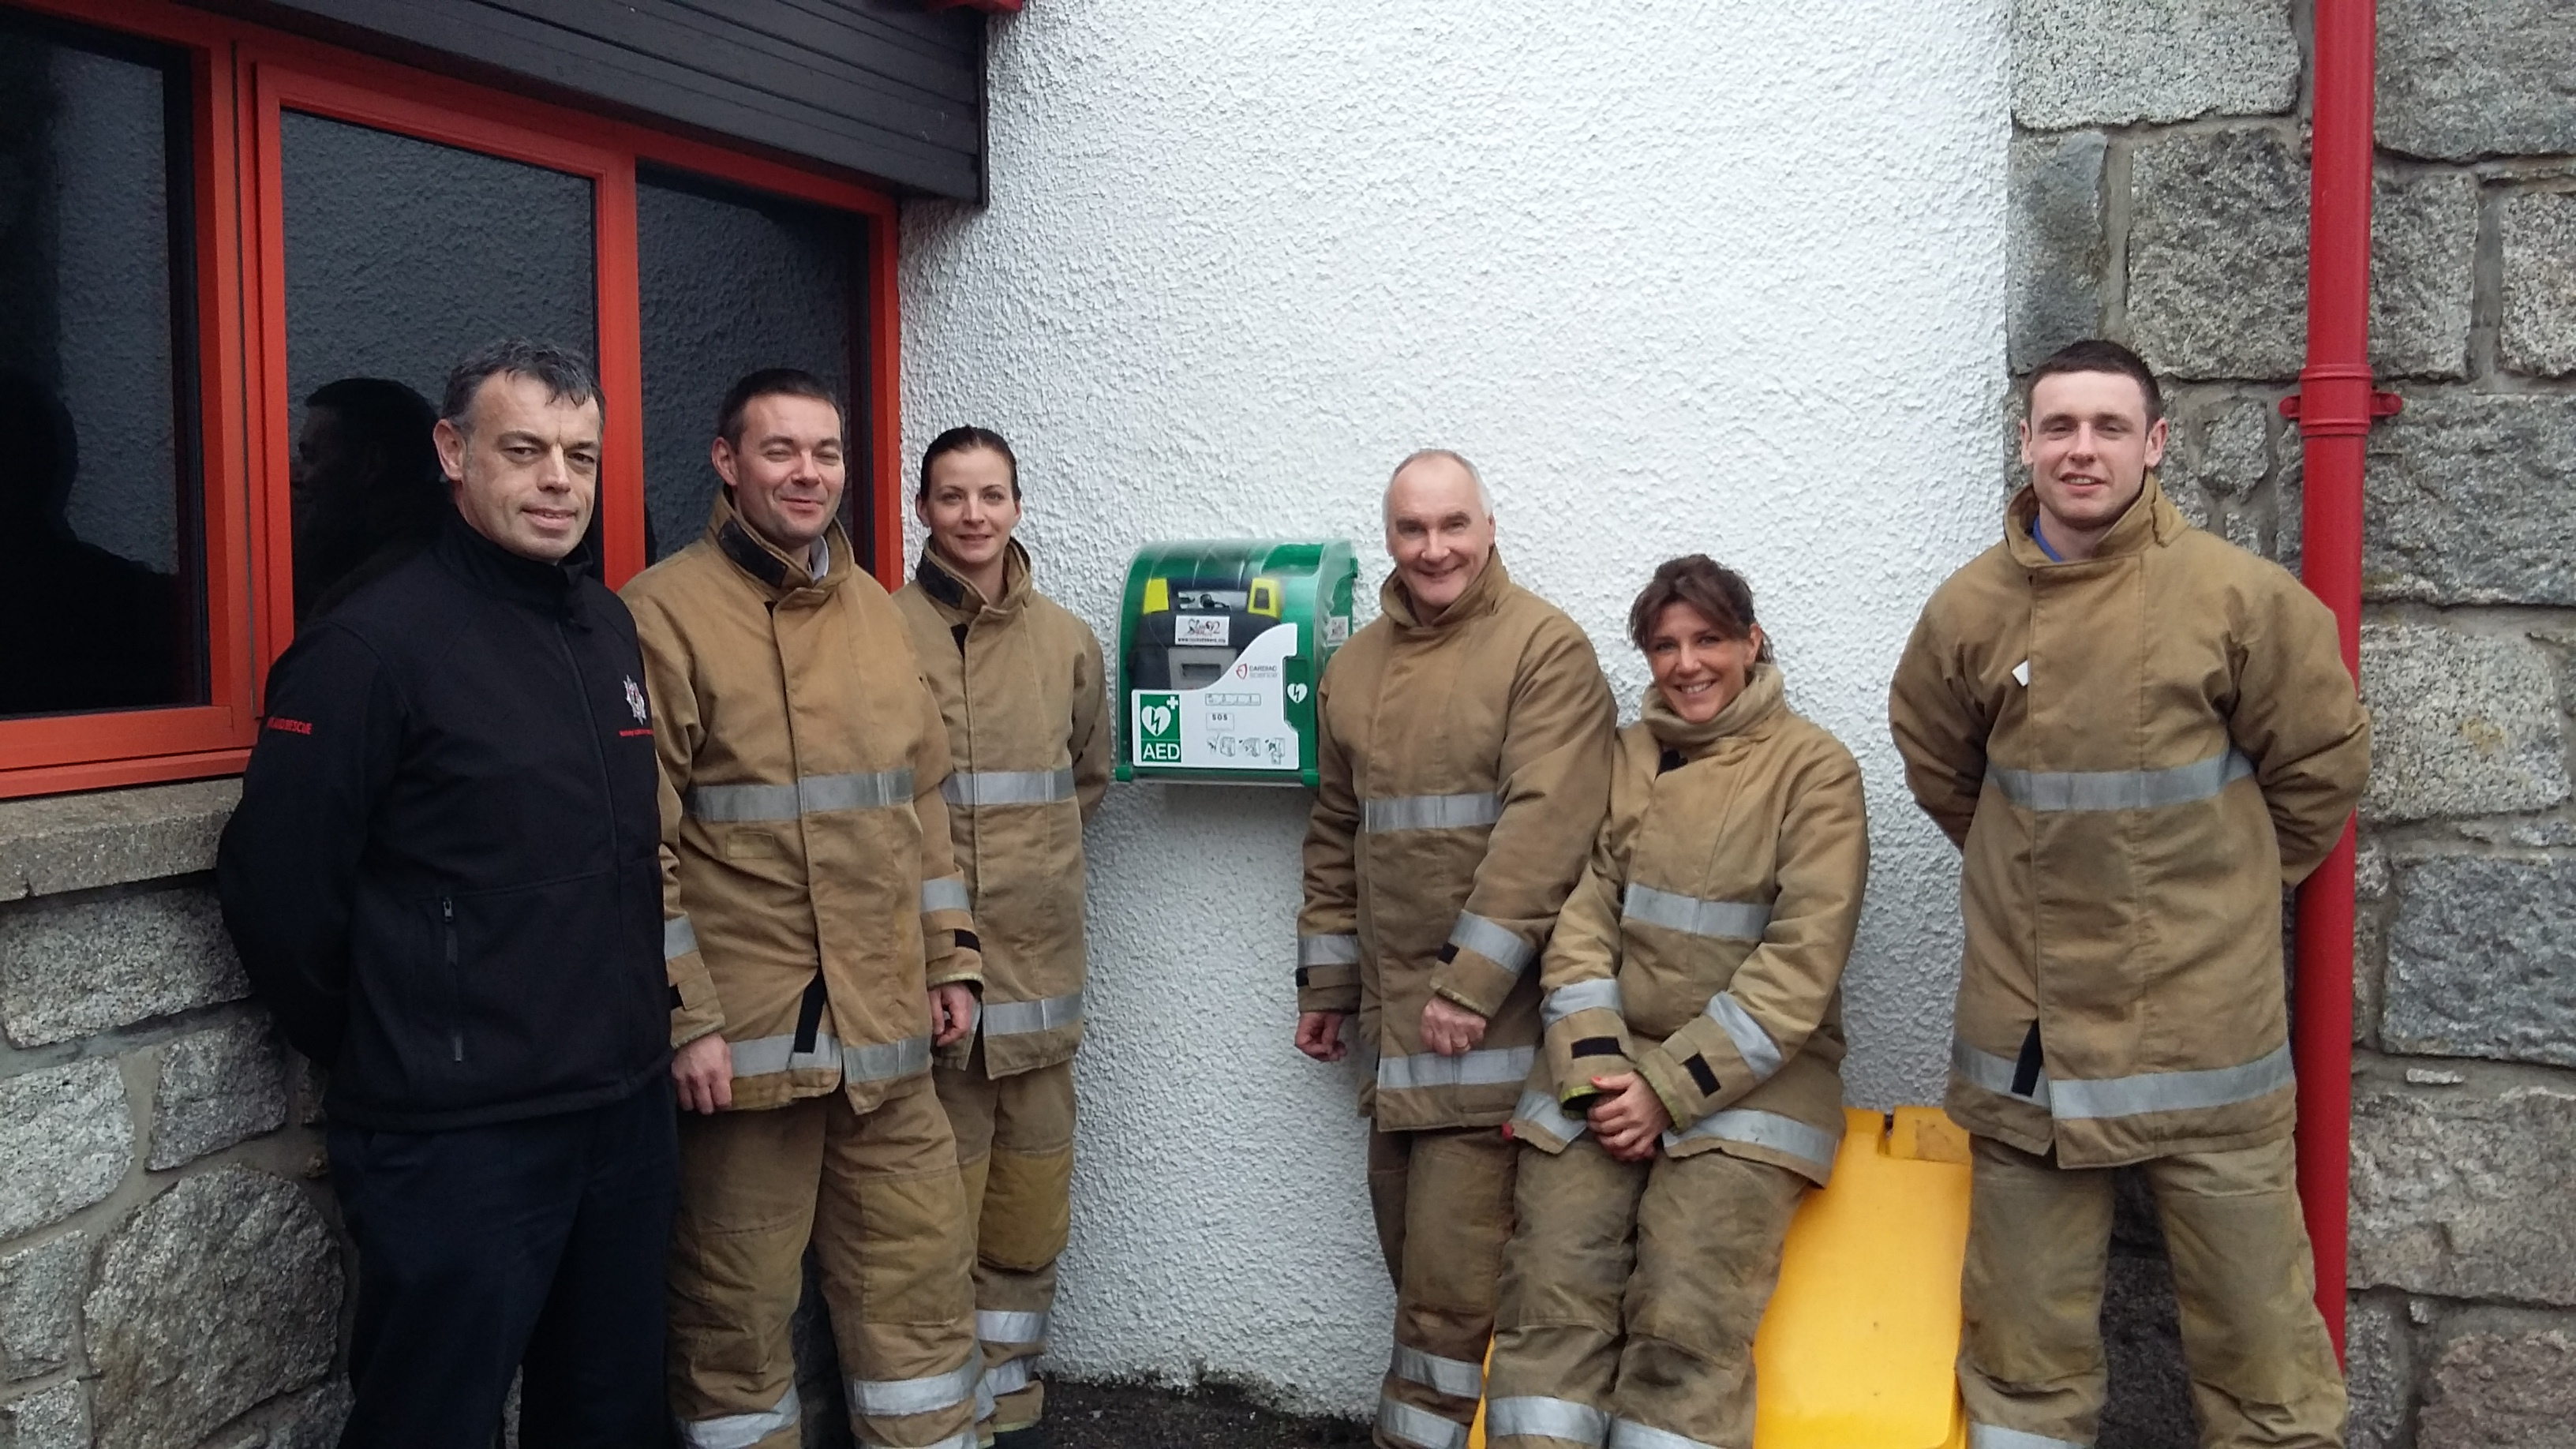 New defibrillator at Aviemore fire station